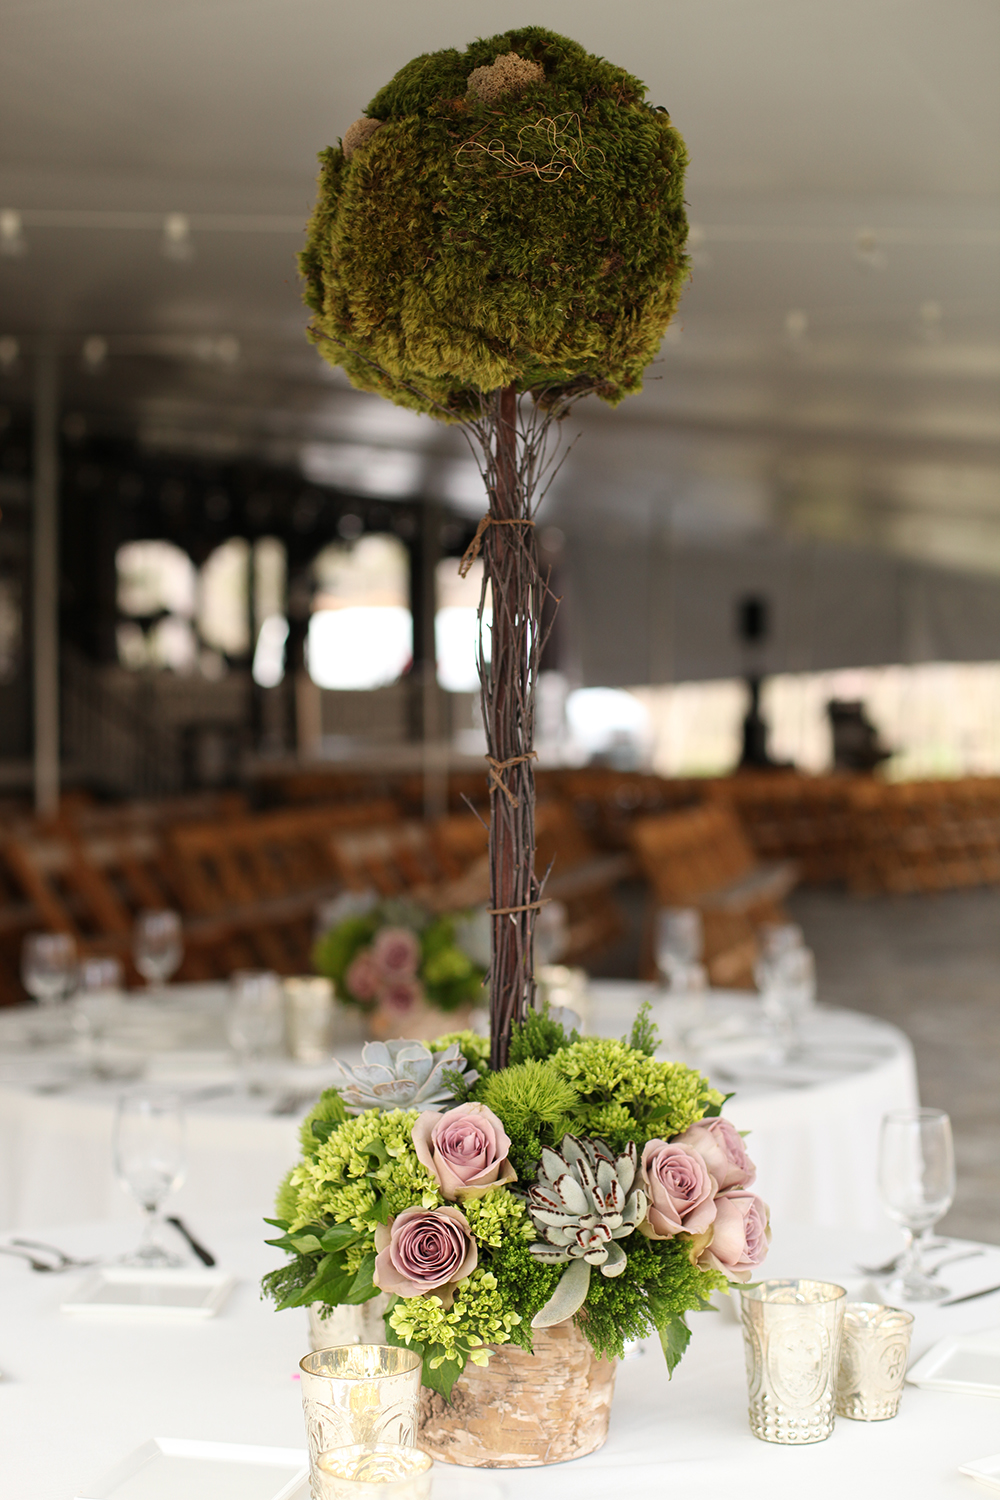 Tall moss topiary centerpieces at Krippendorf Lodge, by Floral Verde LLC in Cincinnati, Ohio, with mood moss, birch branches, succulents, Amnesia roses, Echeveria lilacina, Kalanchoe tomentosa, green hydrangea, Green Trick dianthus and green trachelium in a birch bark pot.